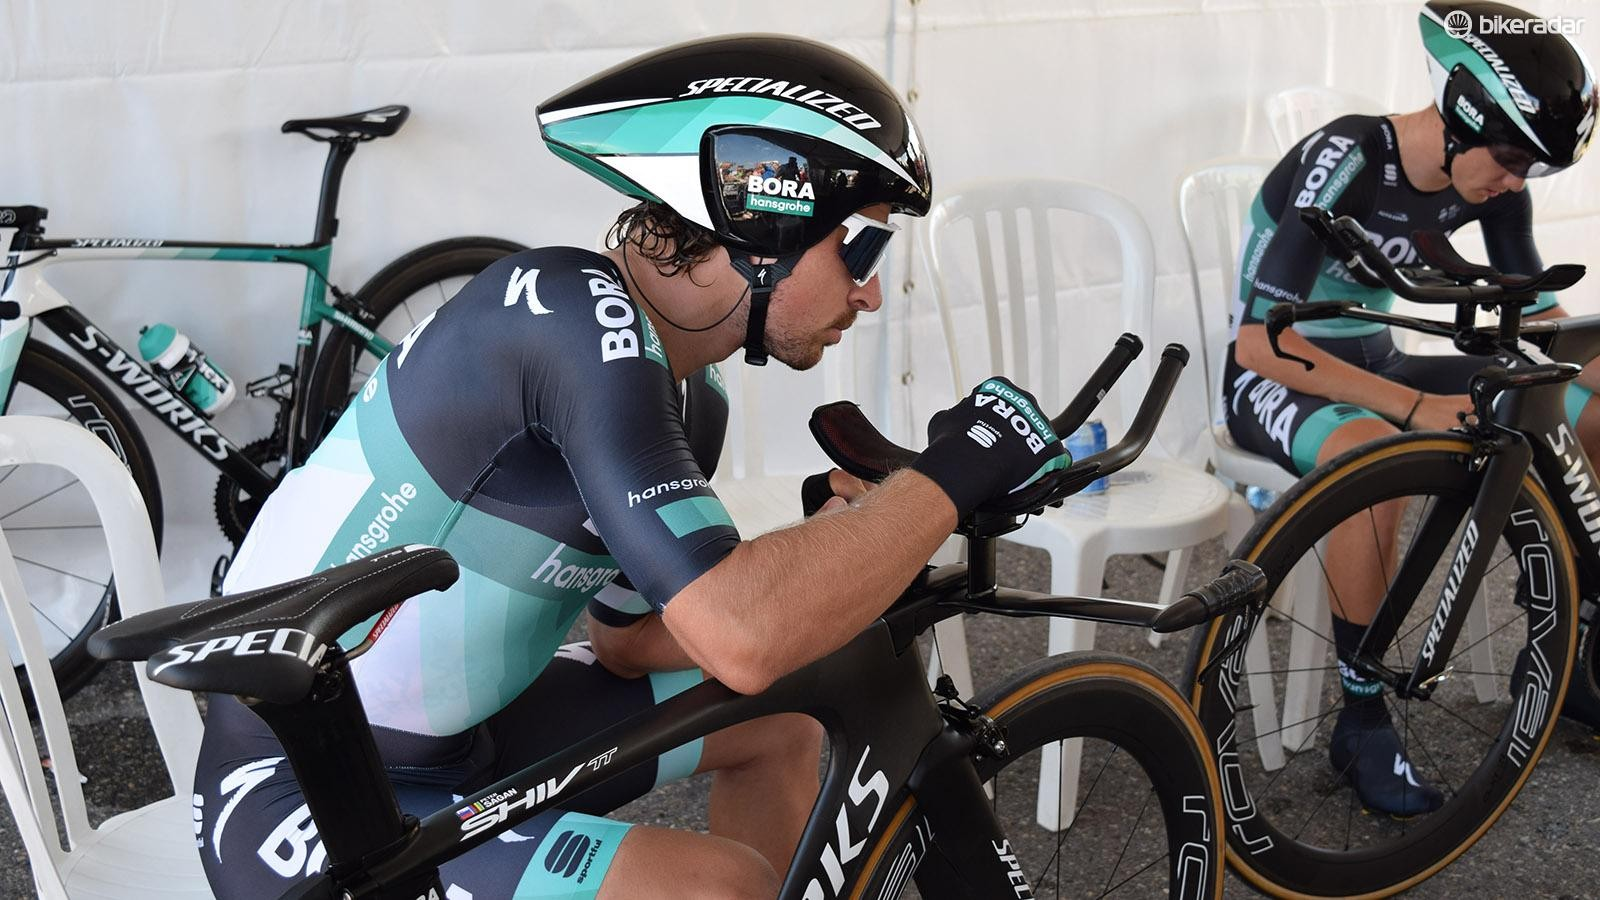 The world champion on the road pairs his power meter ahead of his team's effort